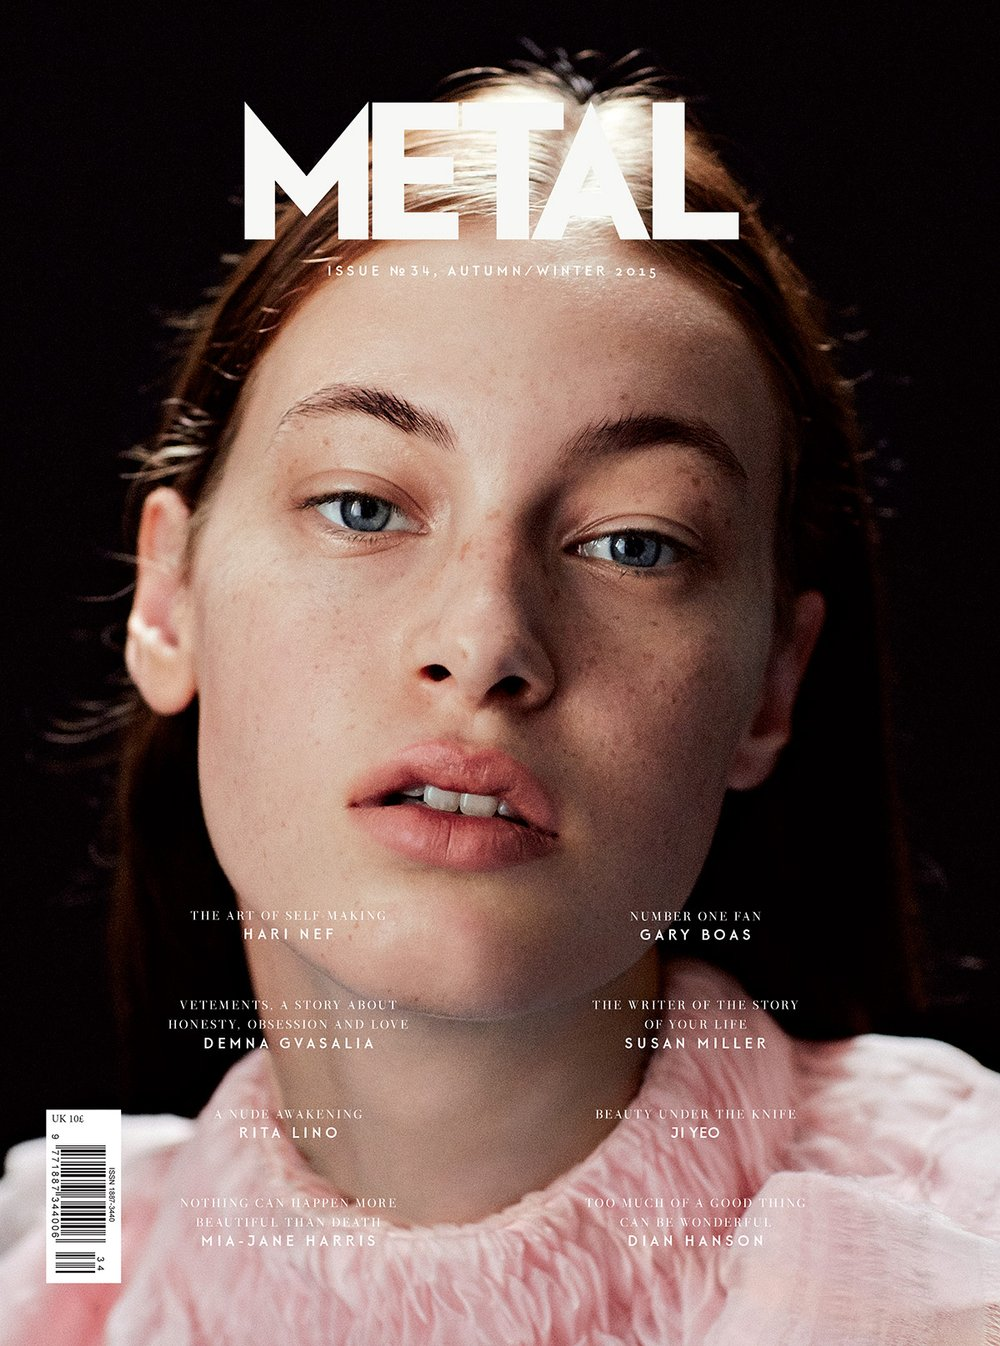 COVER 1 - Julia Leineweber (Oui Management) wearing Chanel by Raffaele Cariou.